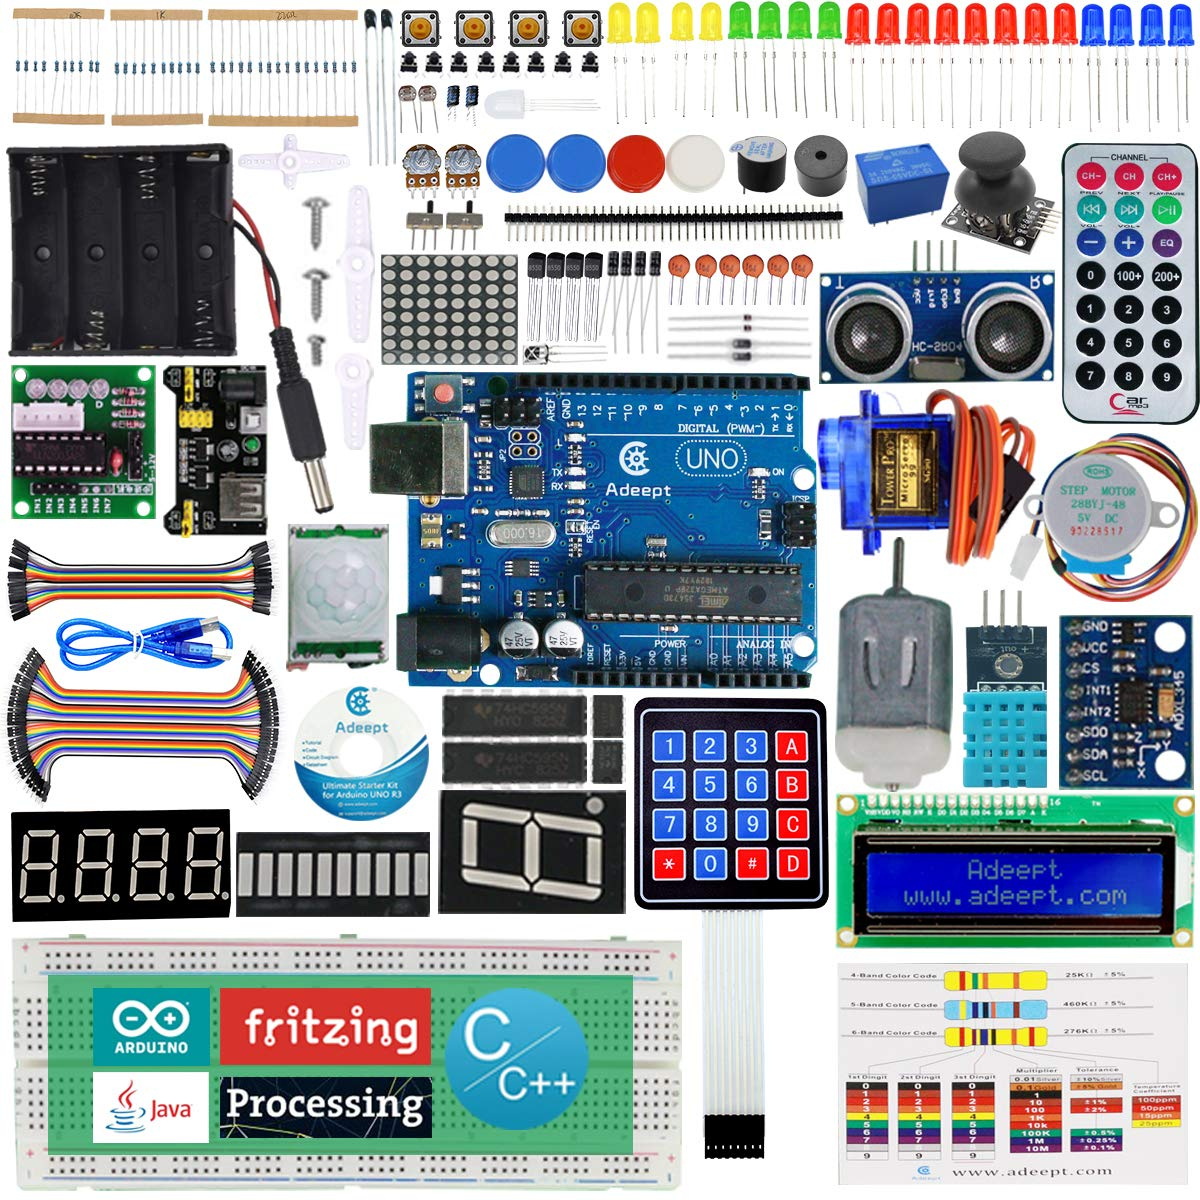 Adeept Ultimate Starter Kit for Arduino UNO R3, LCD1602, Servo Motor, Relay, Processing and C Code, Beginner Starter Kit with User Manual/Guidebook